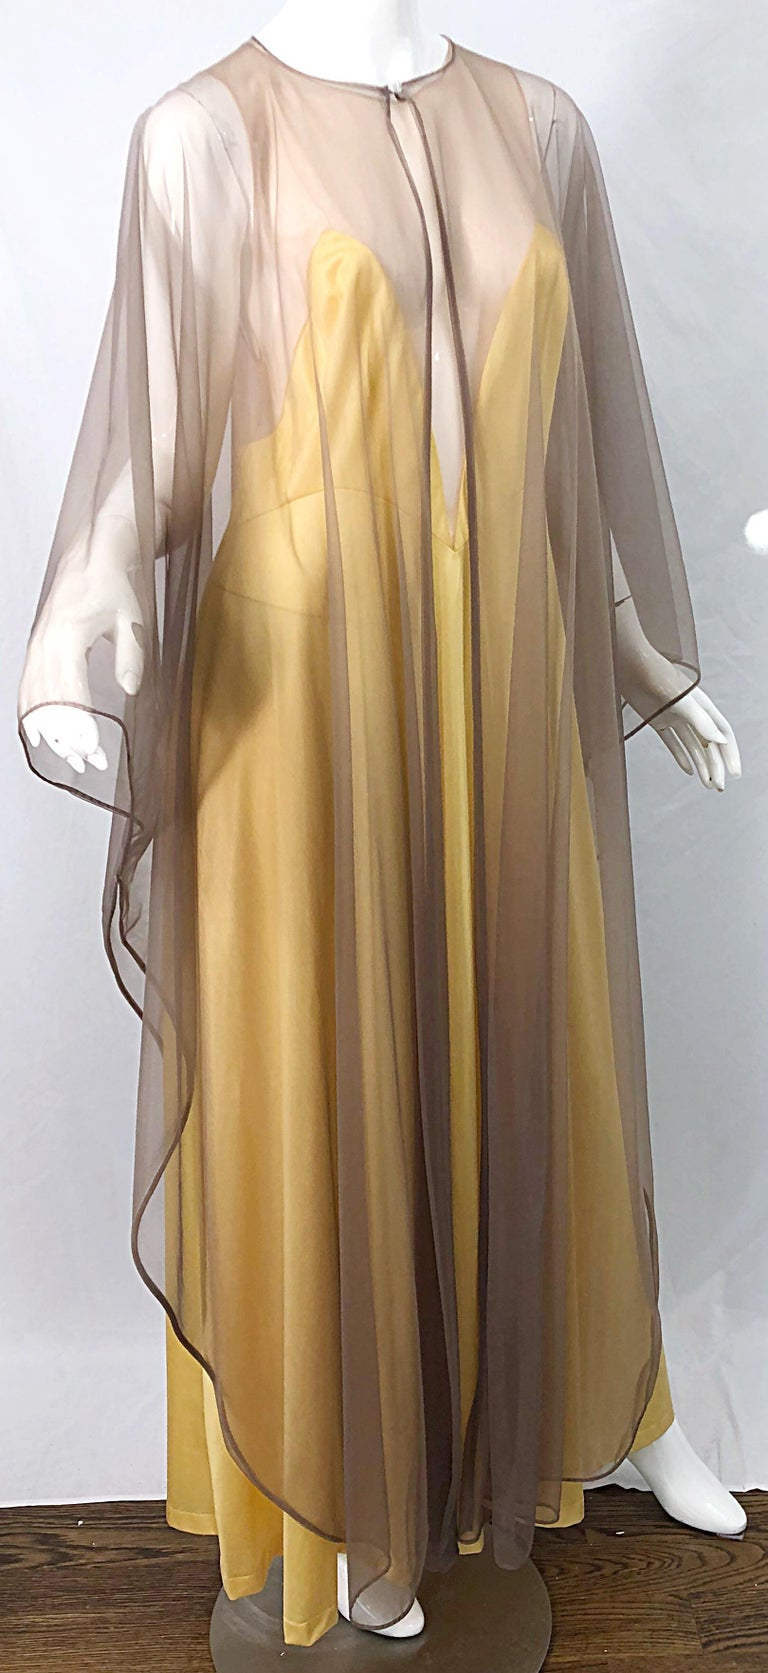 1970s Nude Sheer Caftan and Large Size Yellow Vintage 70s Nightgown Maxi Dress 6